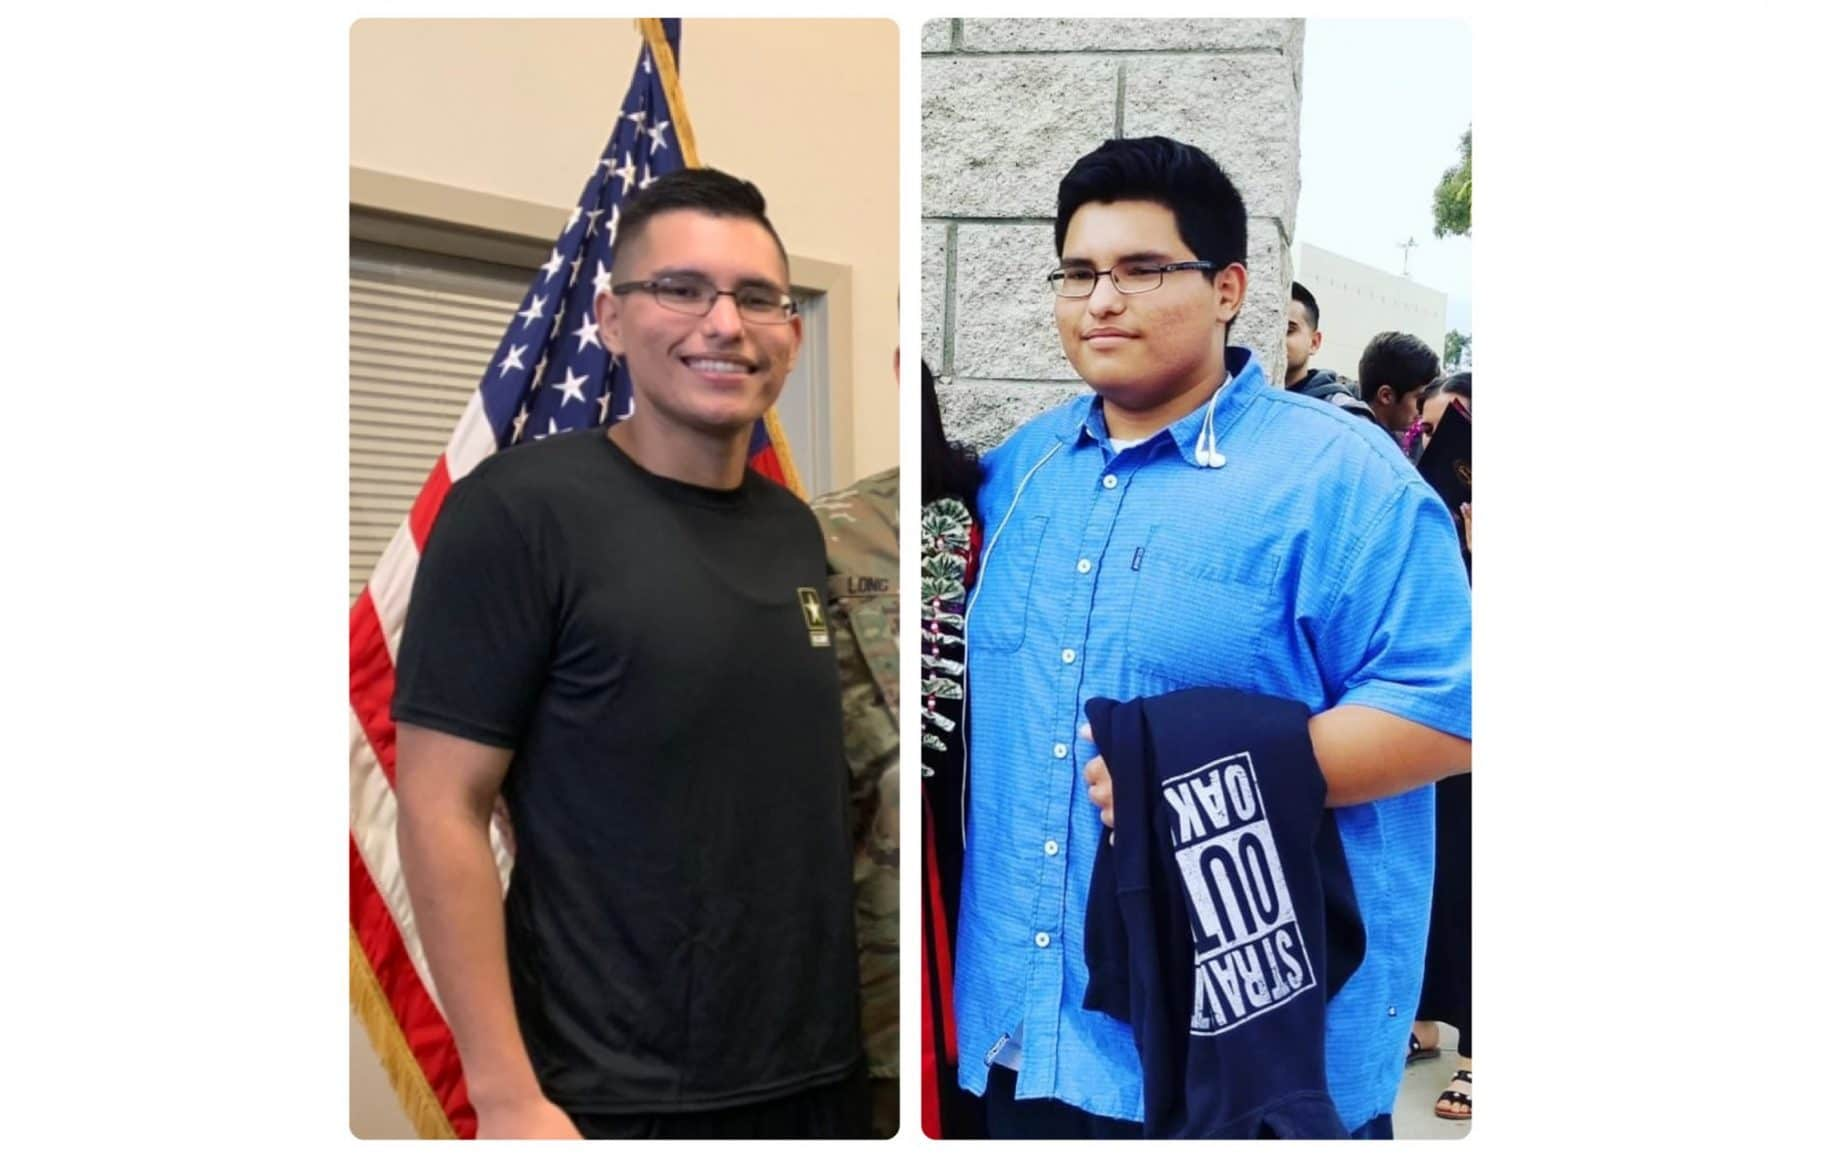 Teen loses 113 pounds to enlist in Army